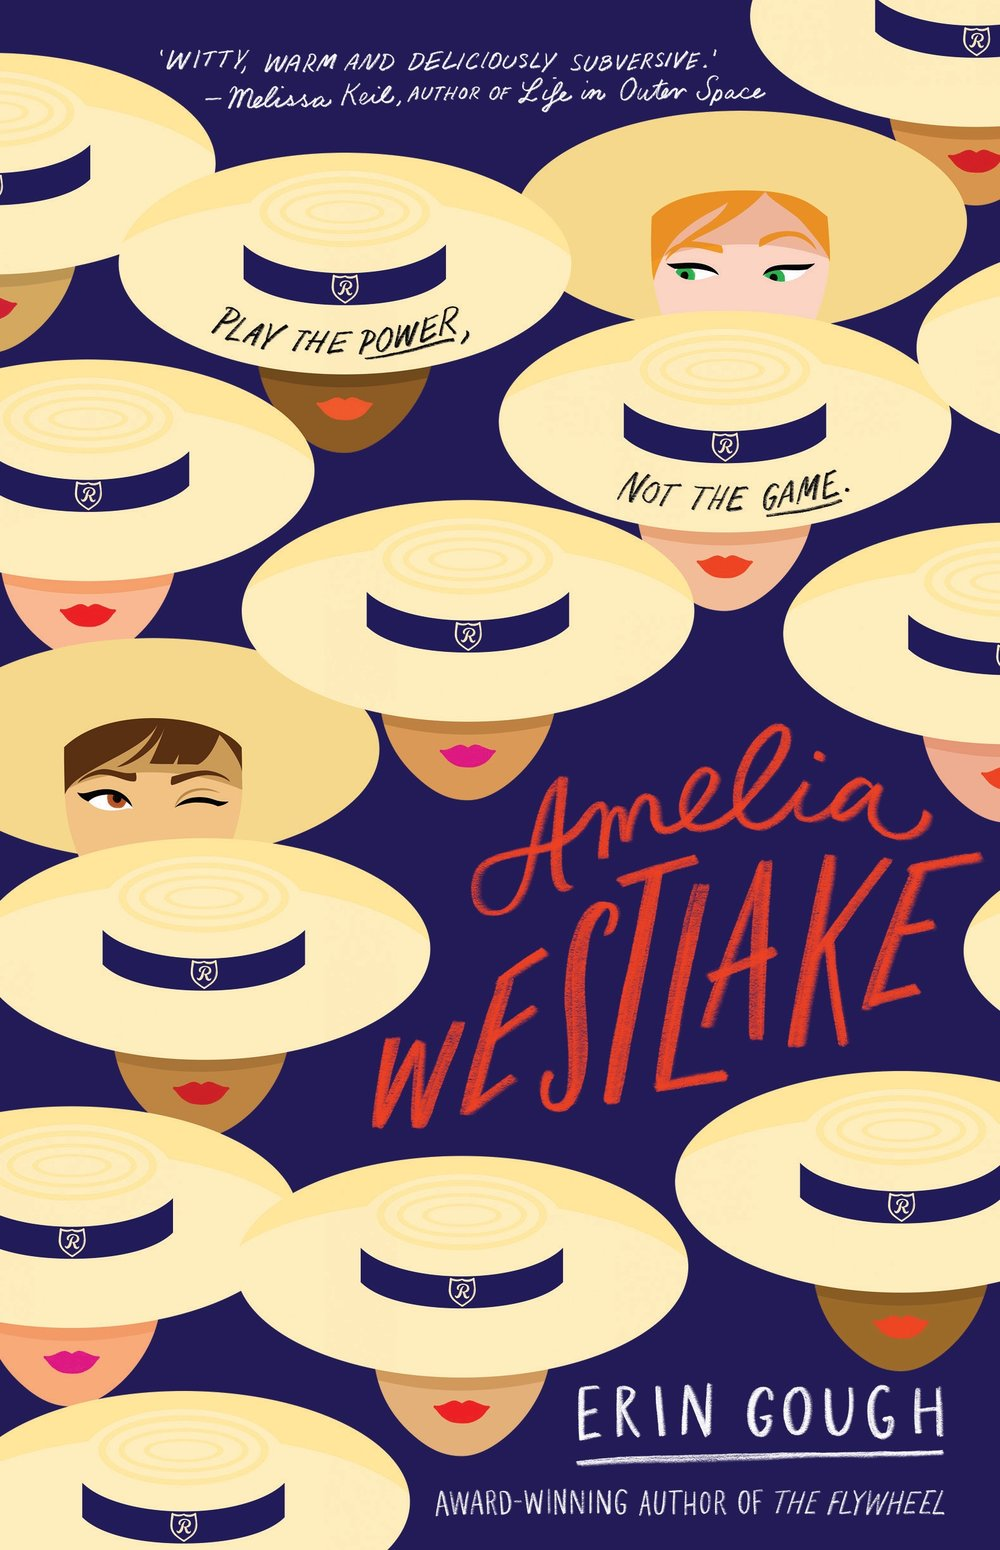 Amelia Westlake - save the date2.jpg